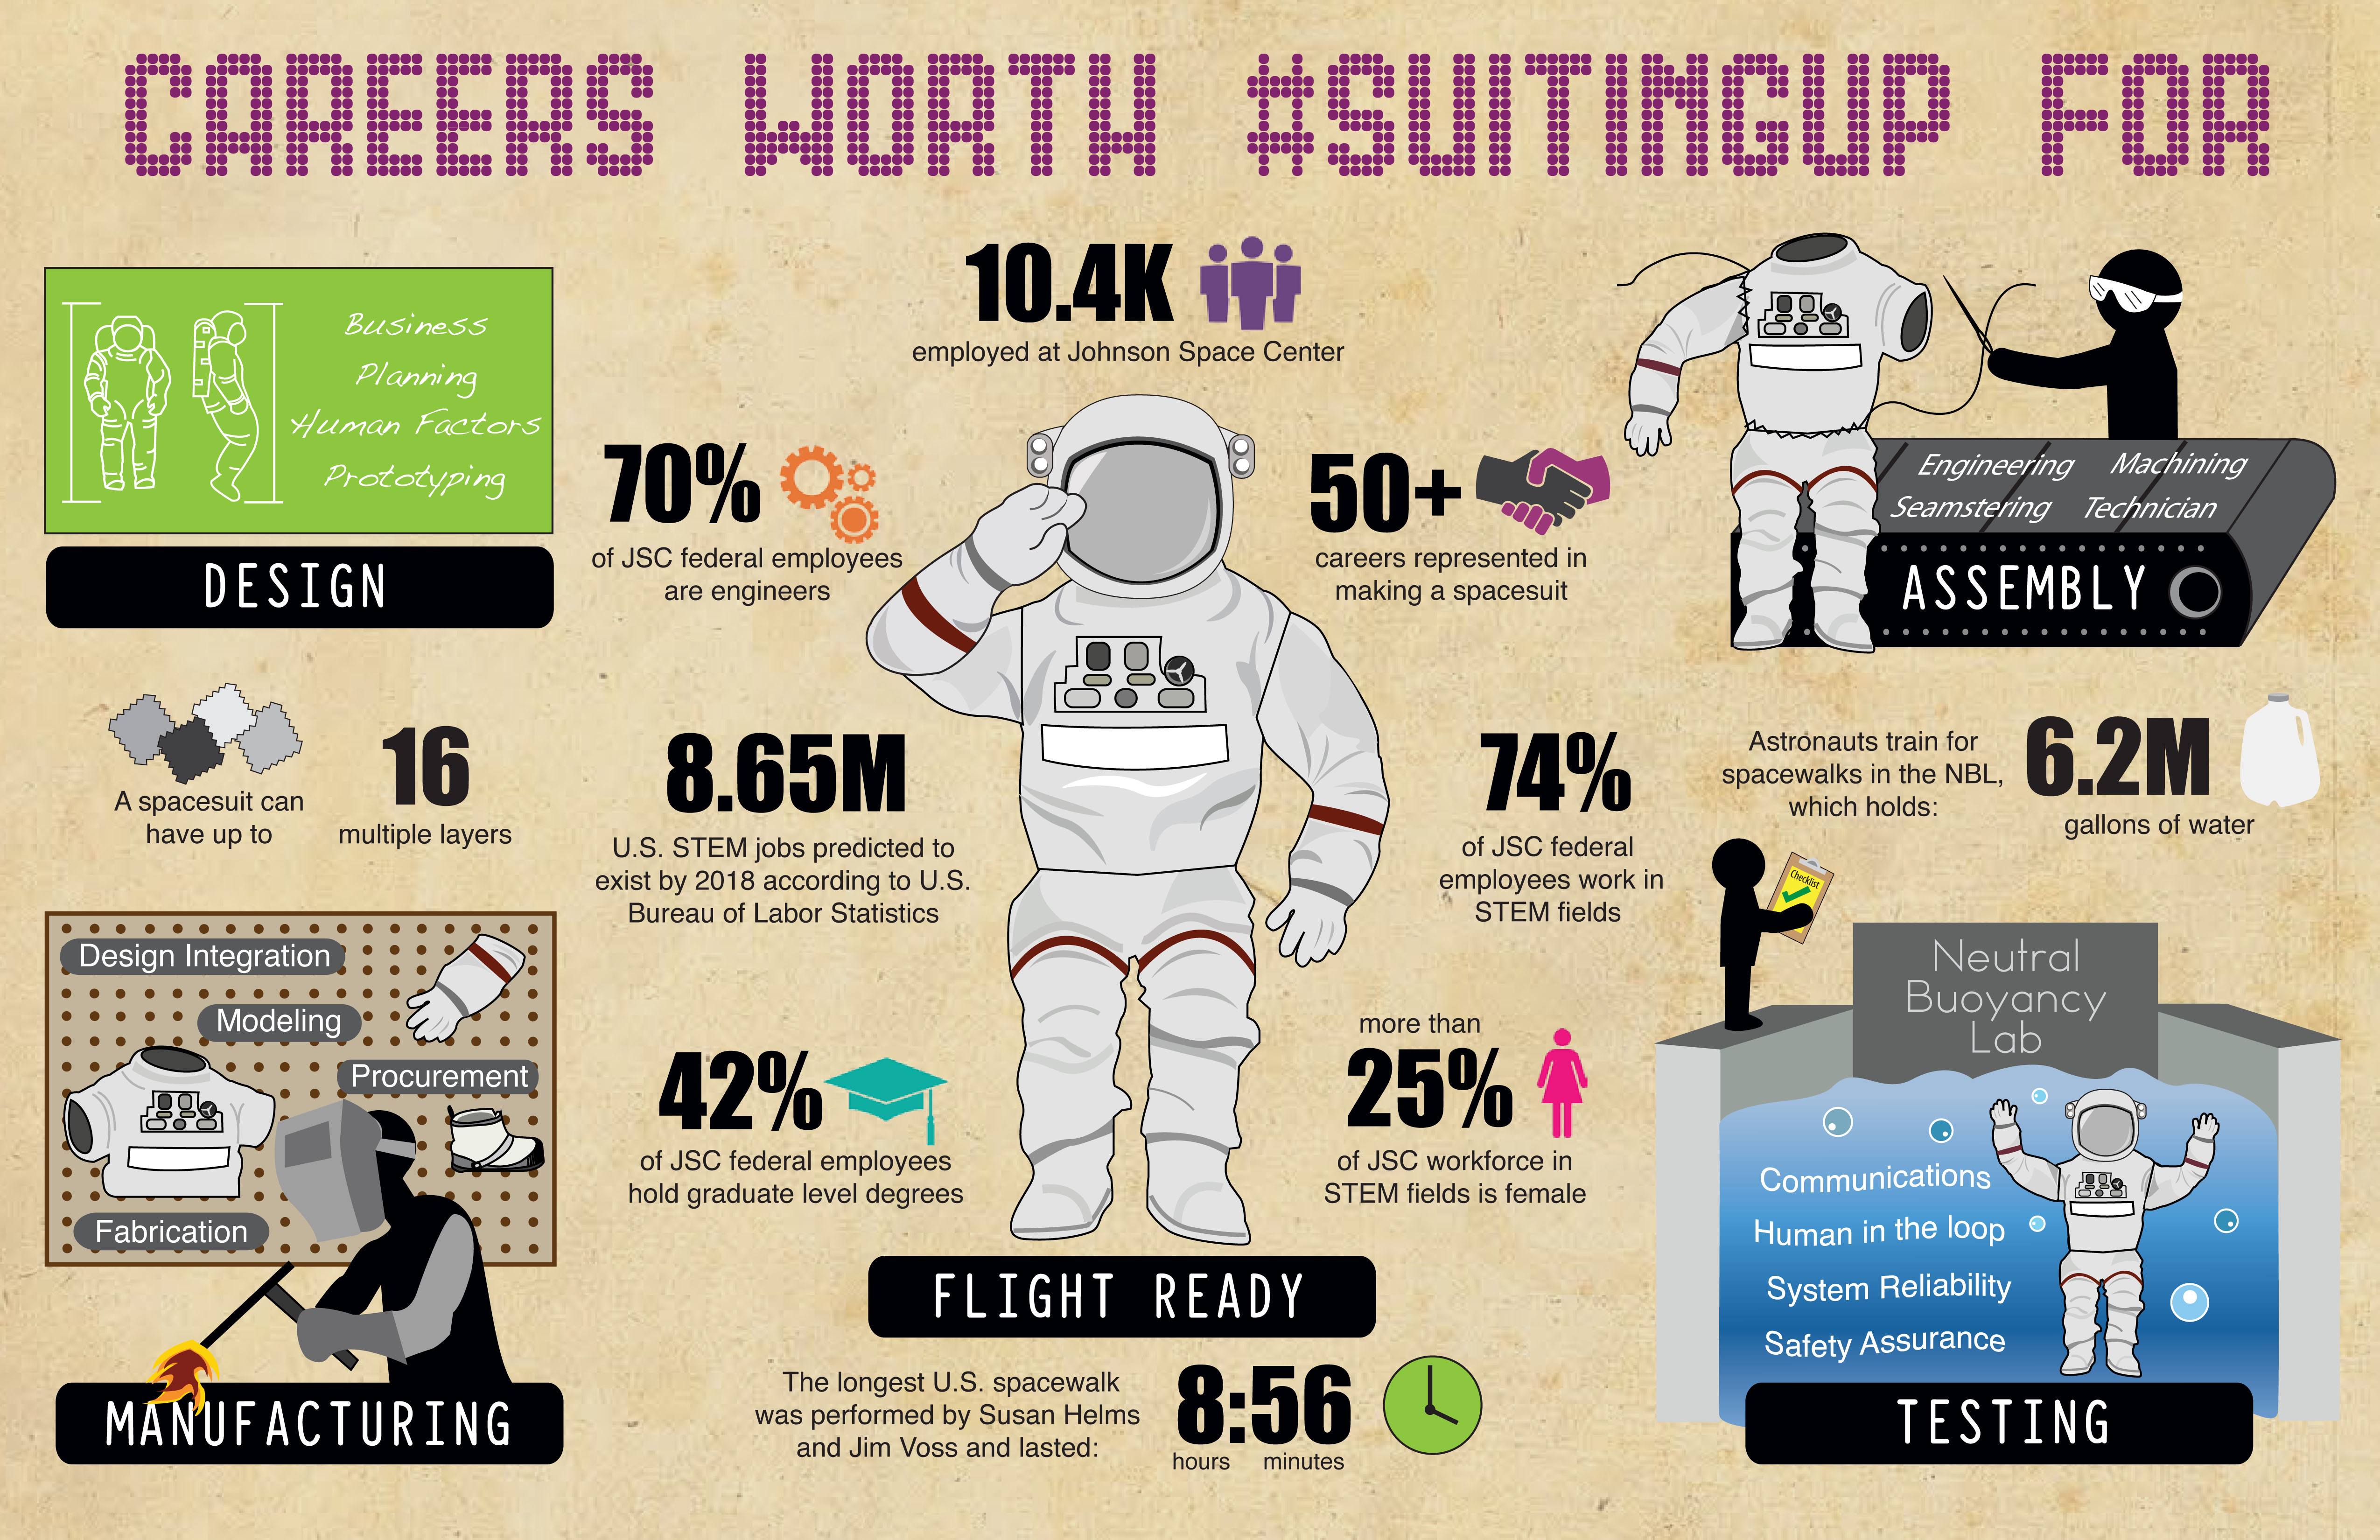 Careers Worth #SuitingUp For | NASA